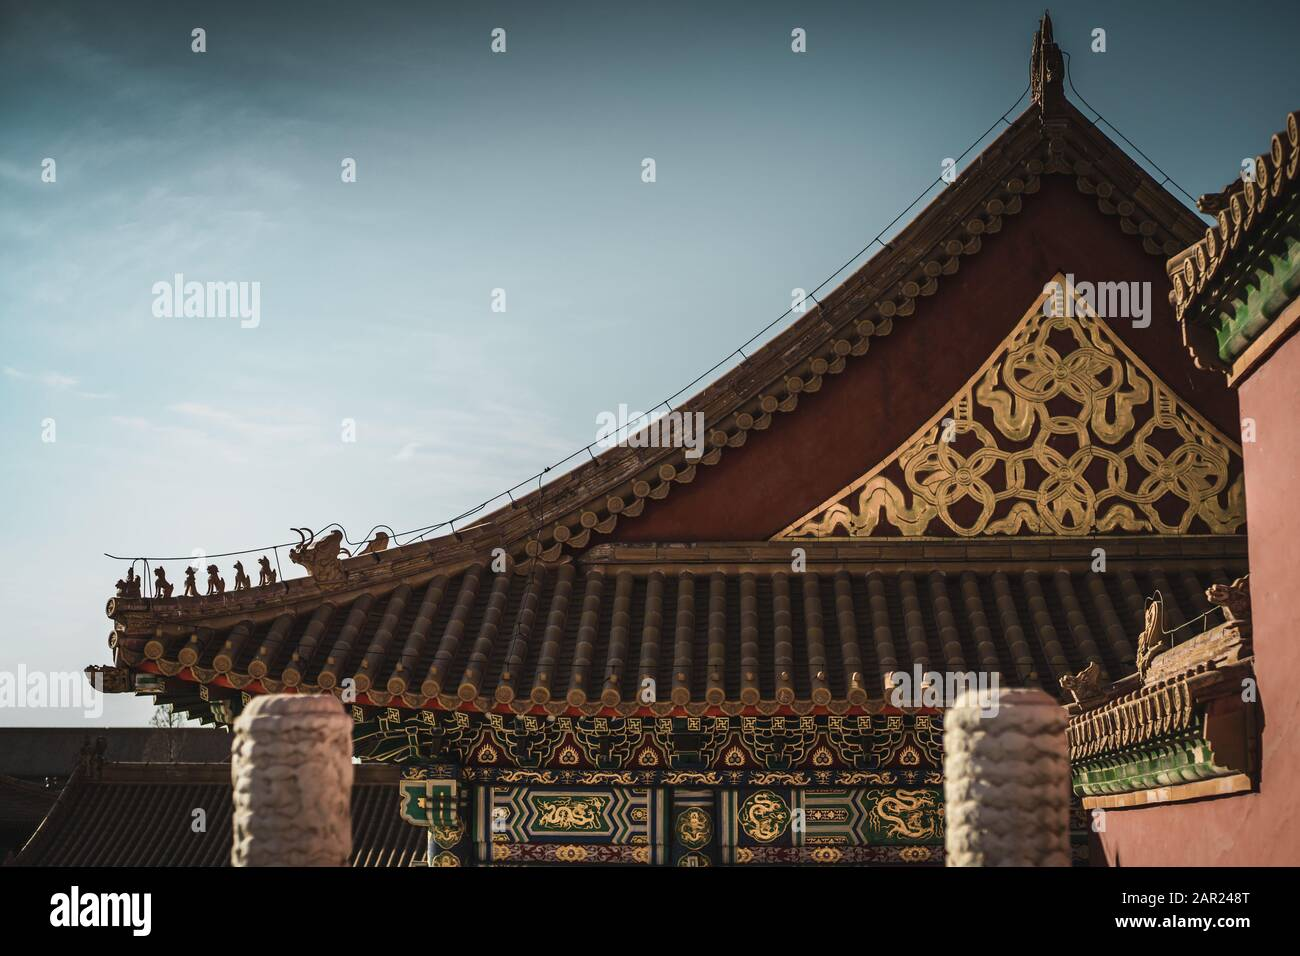 Chinese Pagoda Roof High Resolution Stock Photography And Images Alamy